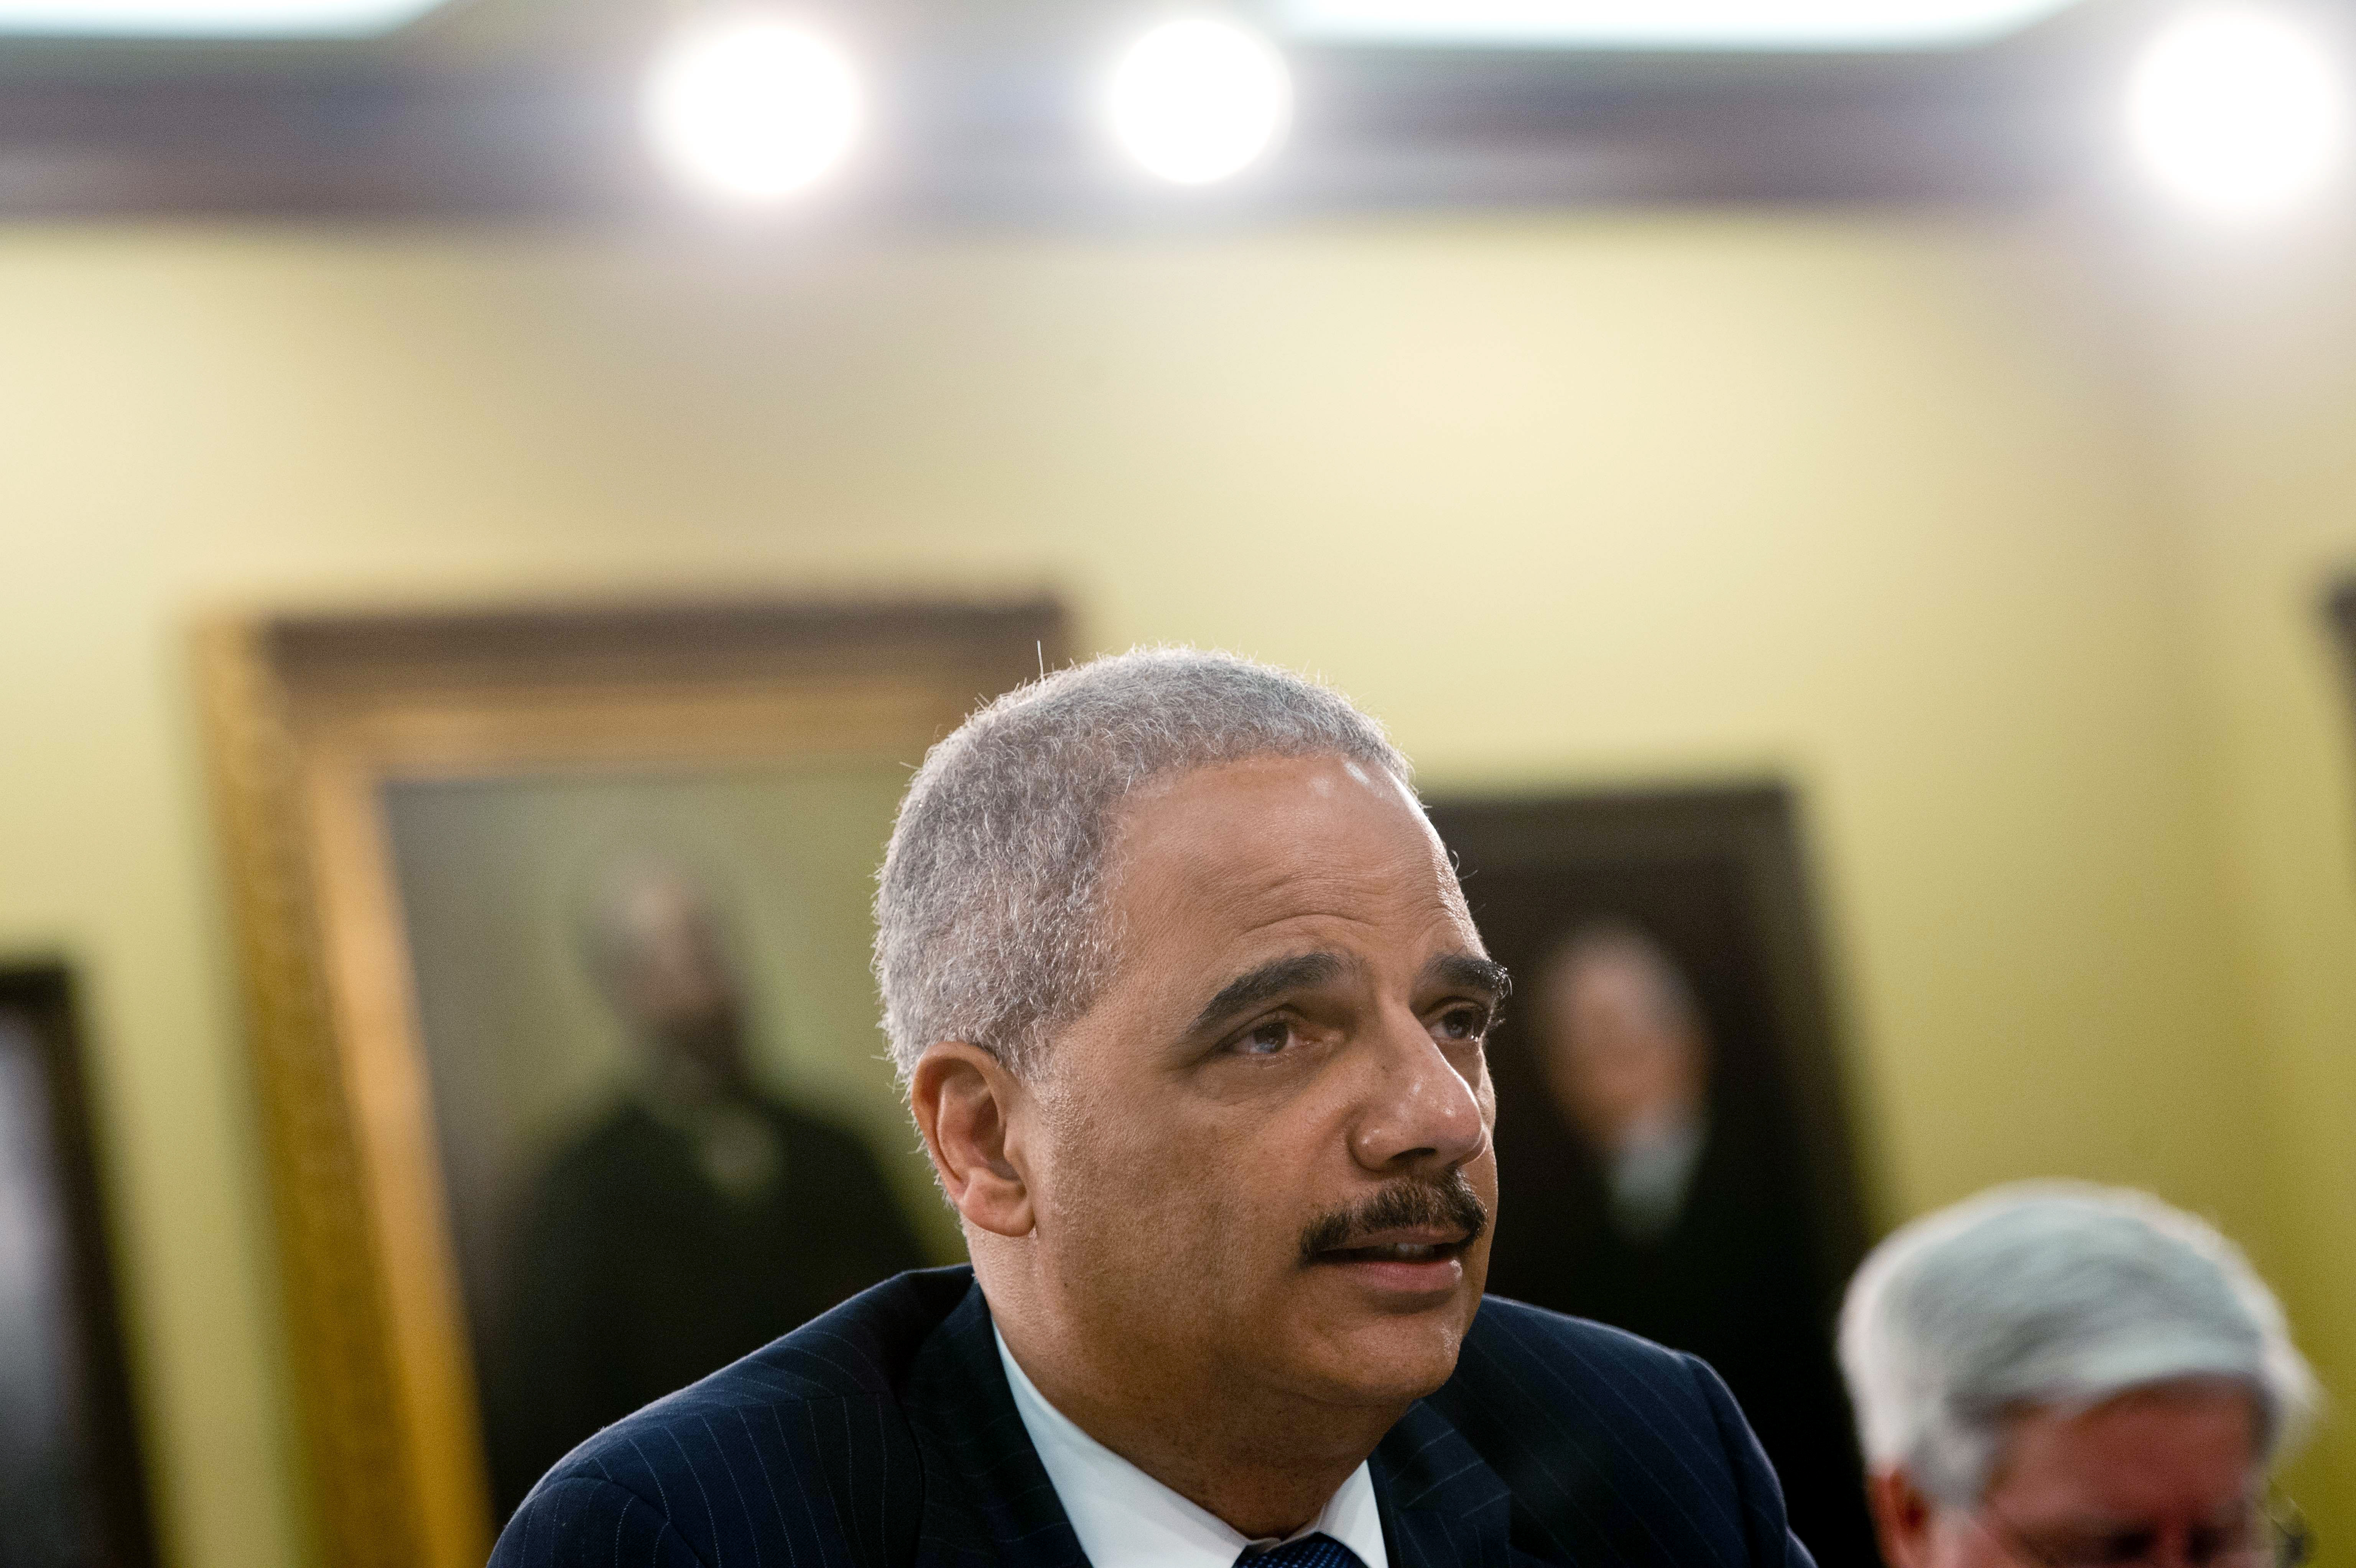 U.S. Attorney General Eric Holder testifies before a House Appropriations Committee Commerce, Justice, Science, and Related Agencies Subcommittee hearing on the Justice Department's fiscal year 2015 budget request on Capitol Hill in Washington, D.C. on April 4, 2014.